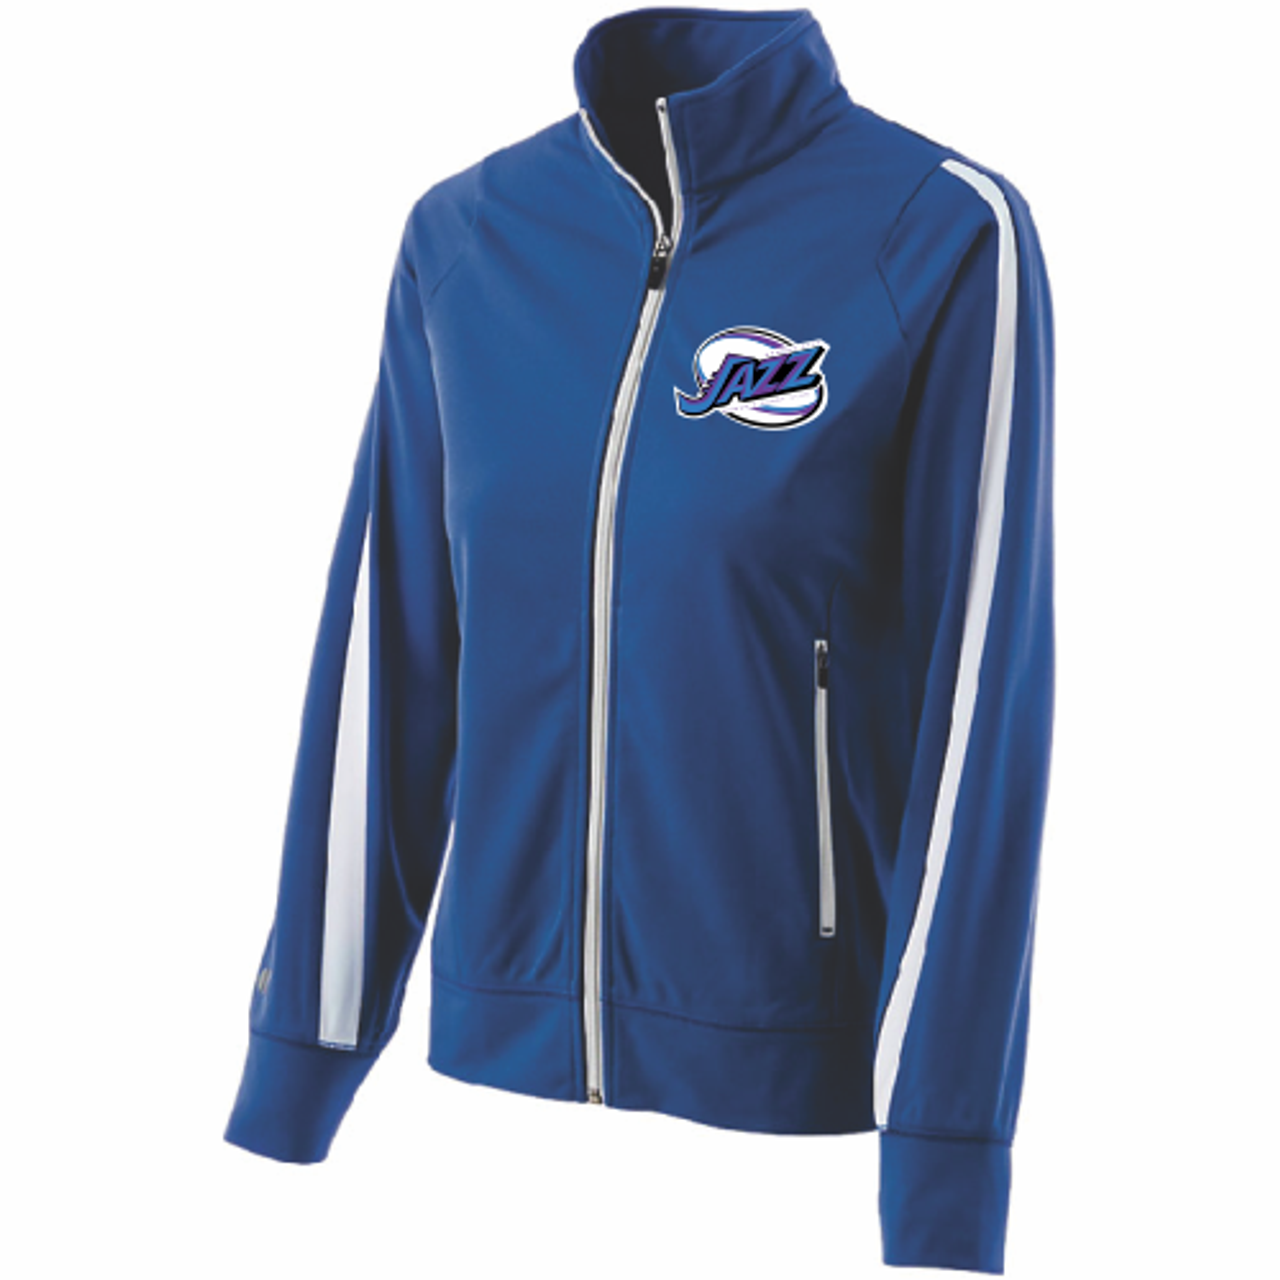 KC Jazz Full-Zip Training Jacket